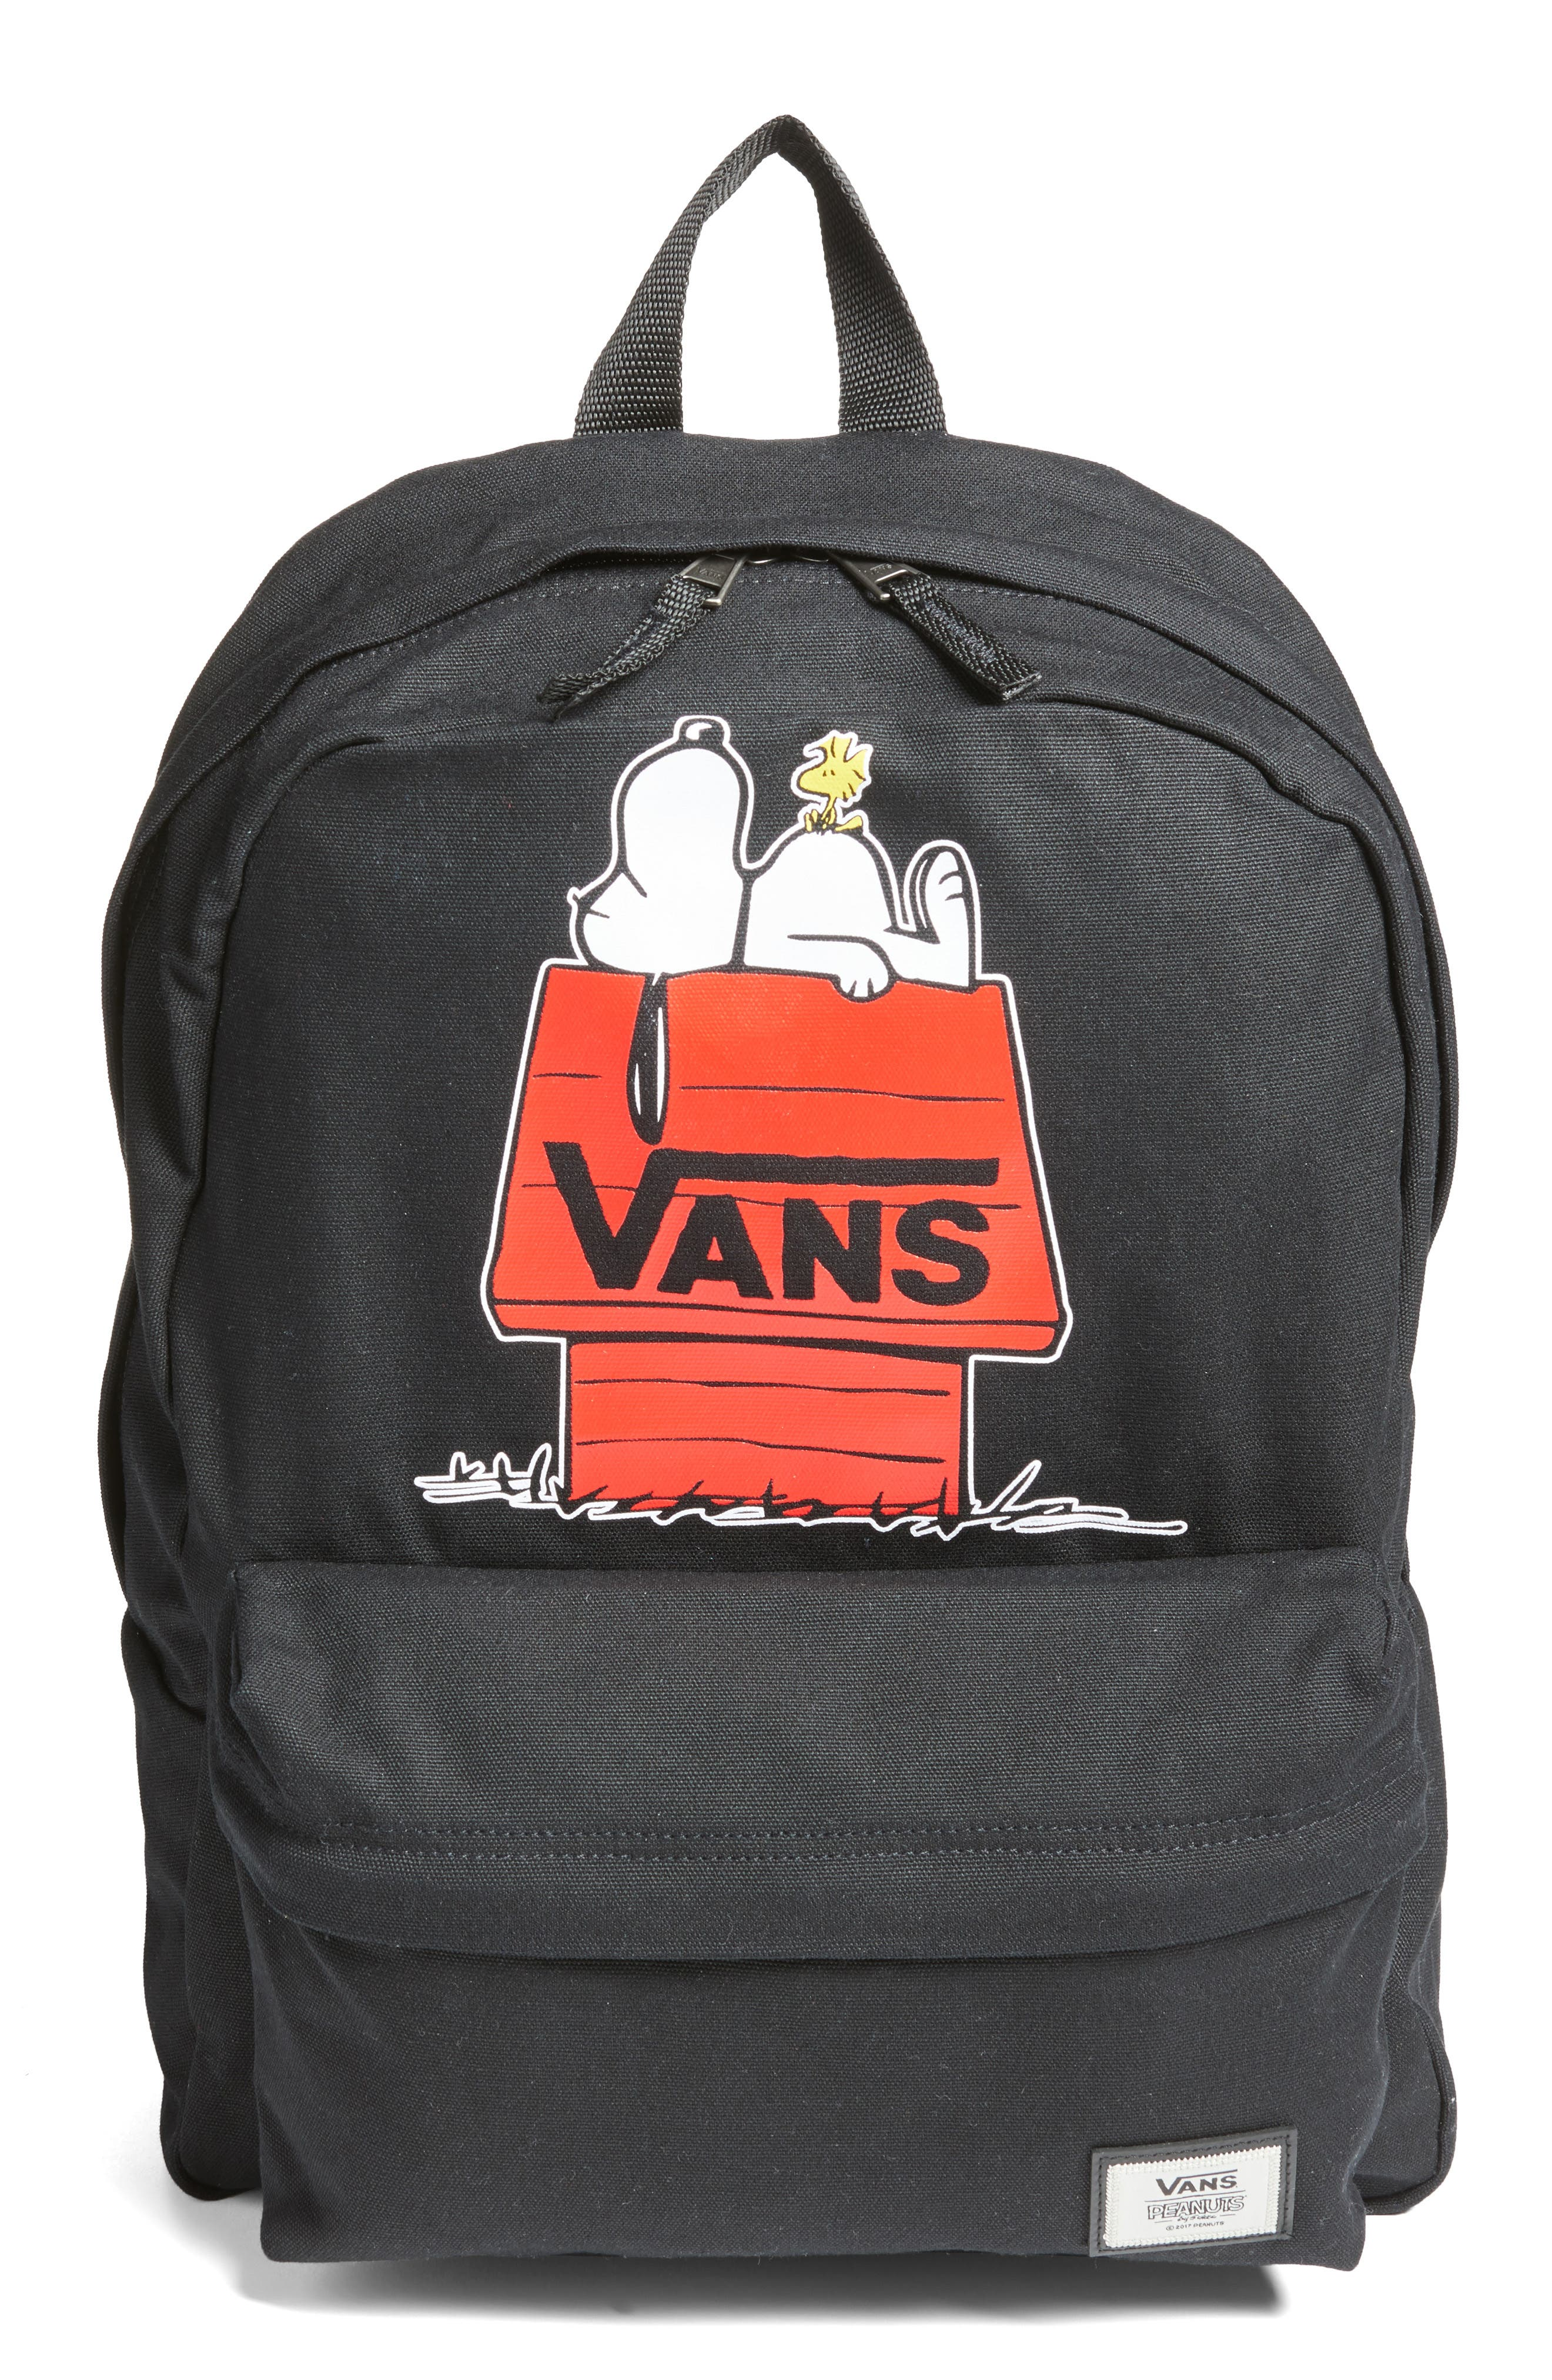 Vans x Peanuts® Snoopy & Woodstock Backpack (Kids)